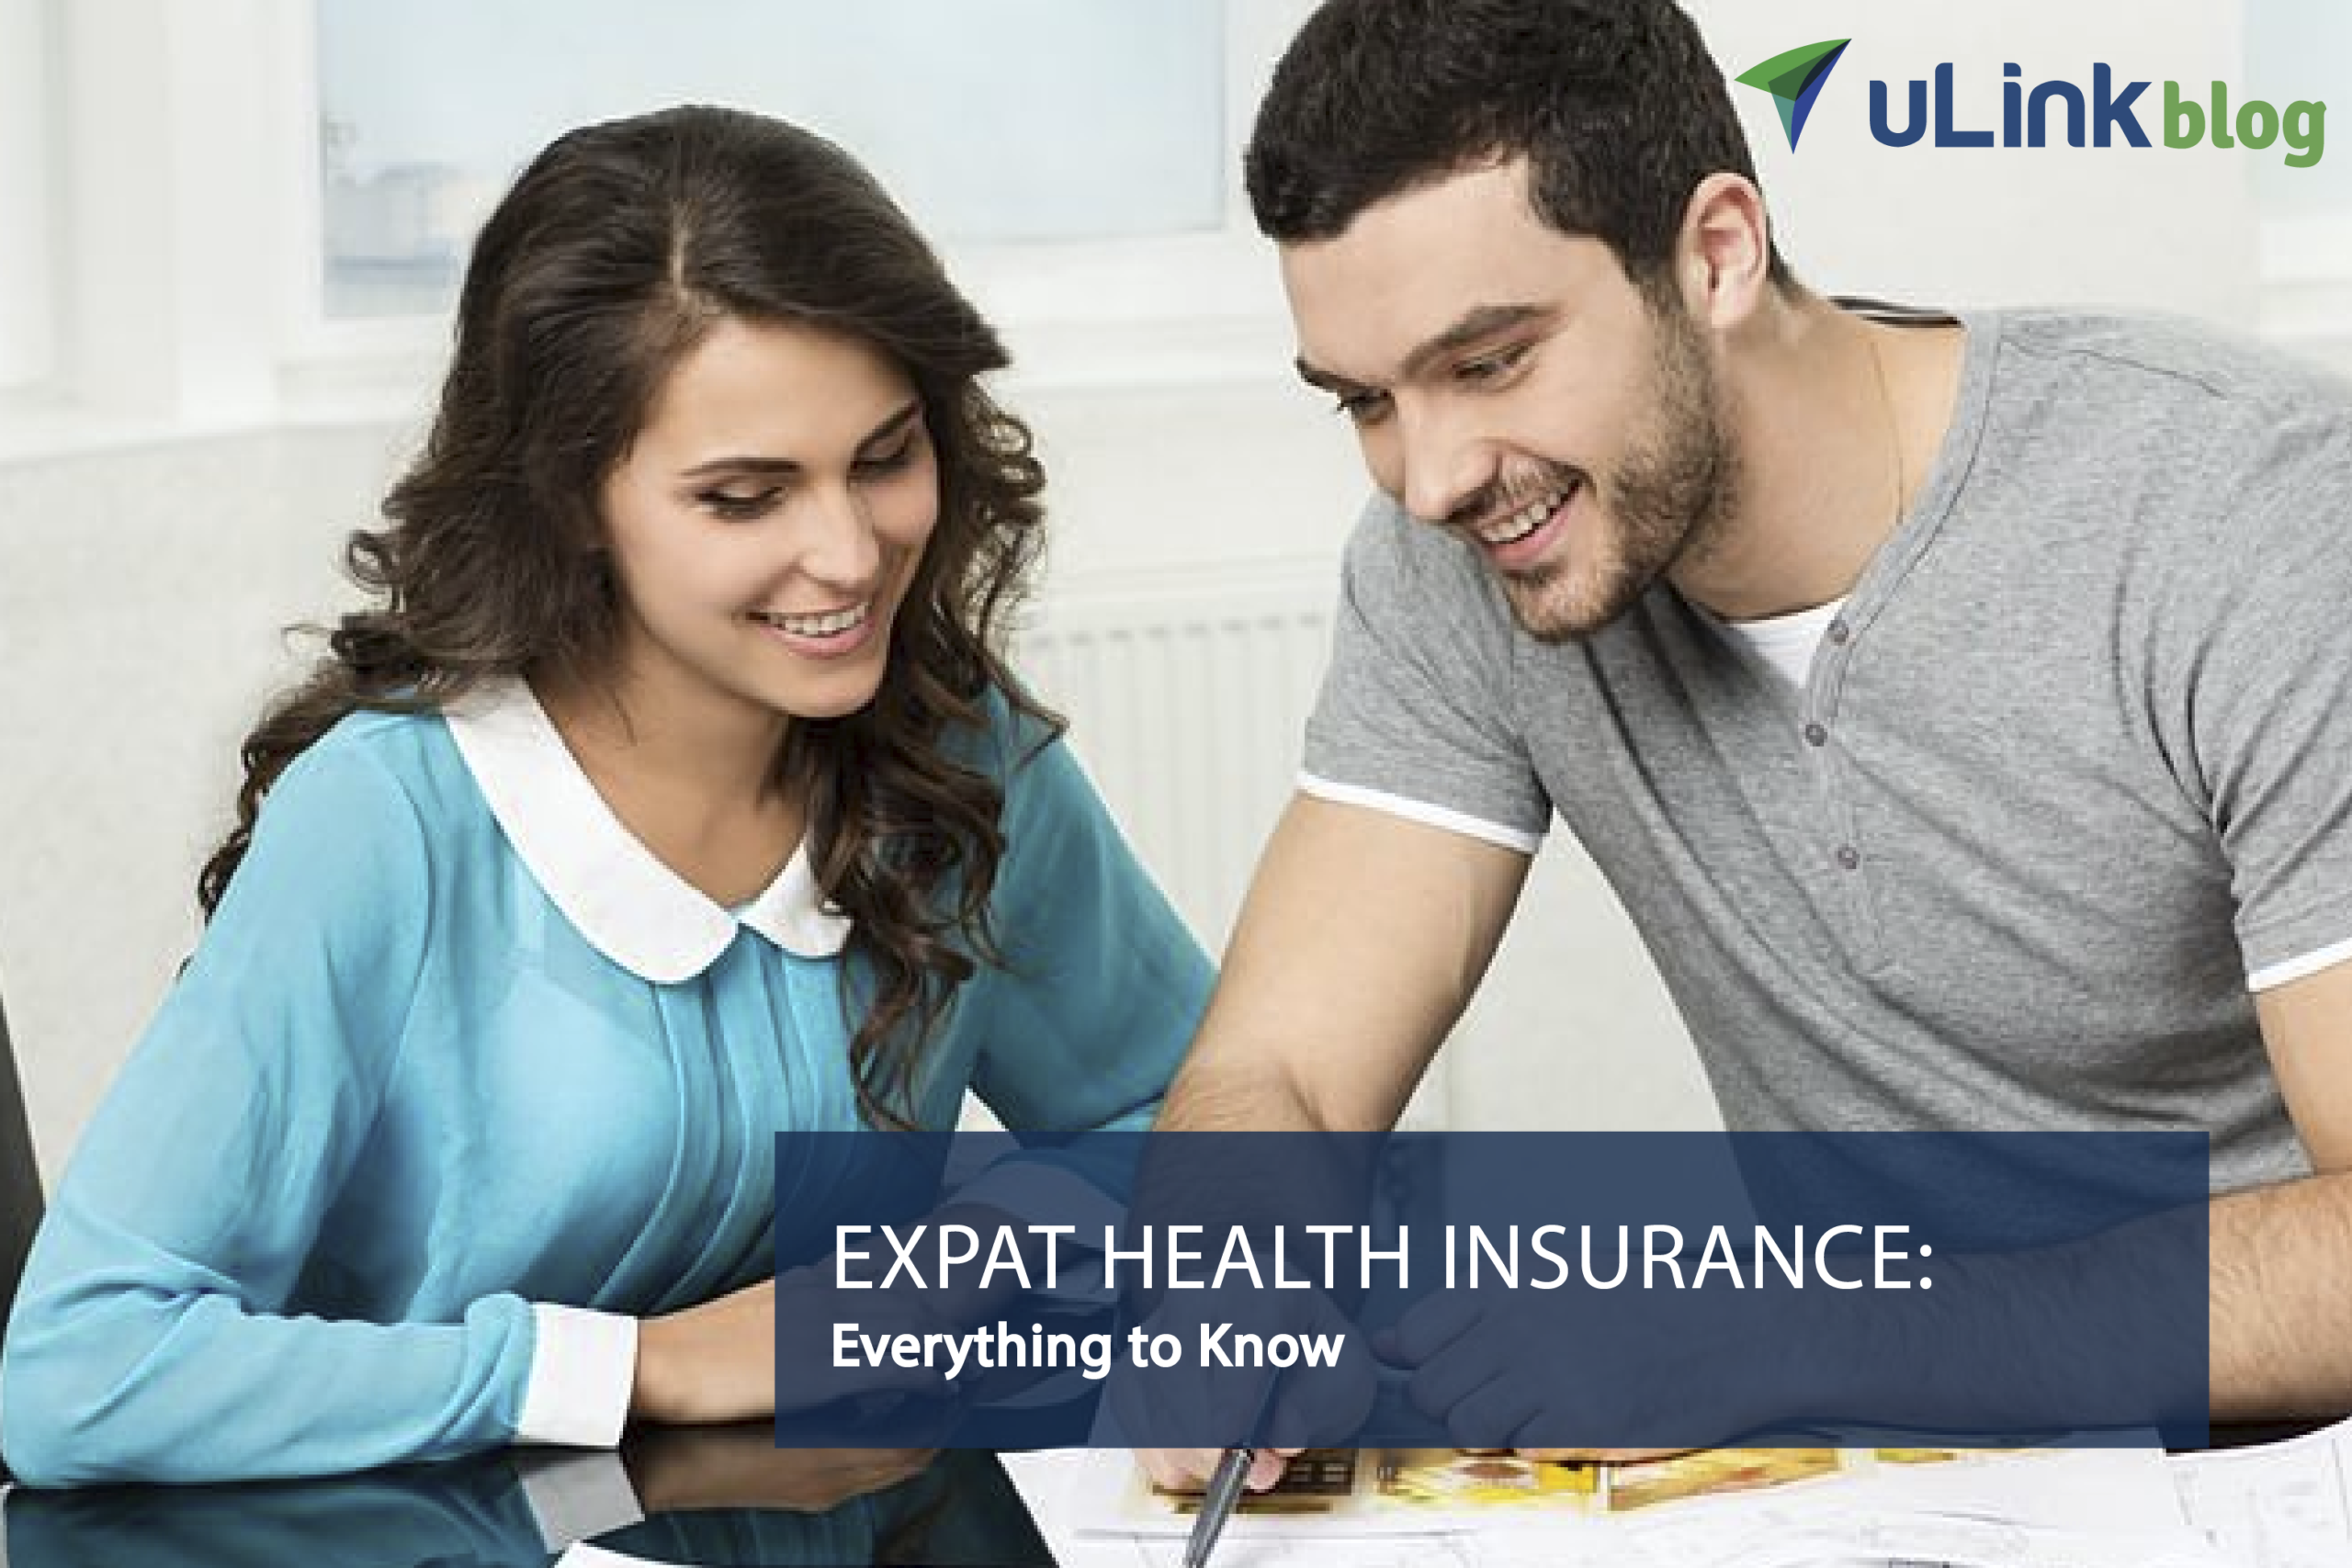 Expat couple sitting at a desk discussing expat health insurance